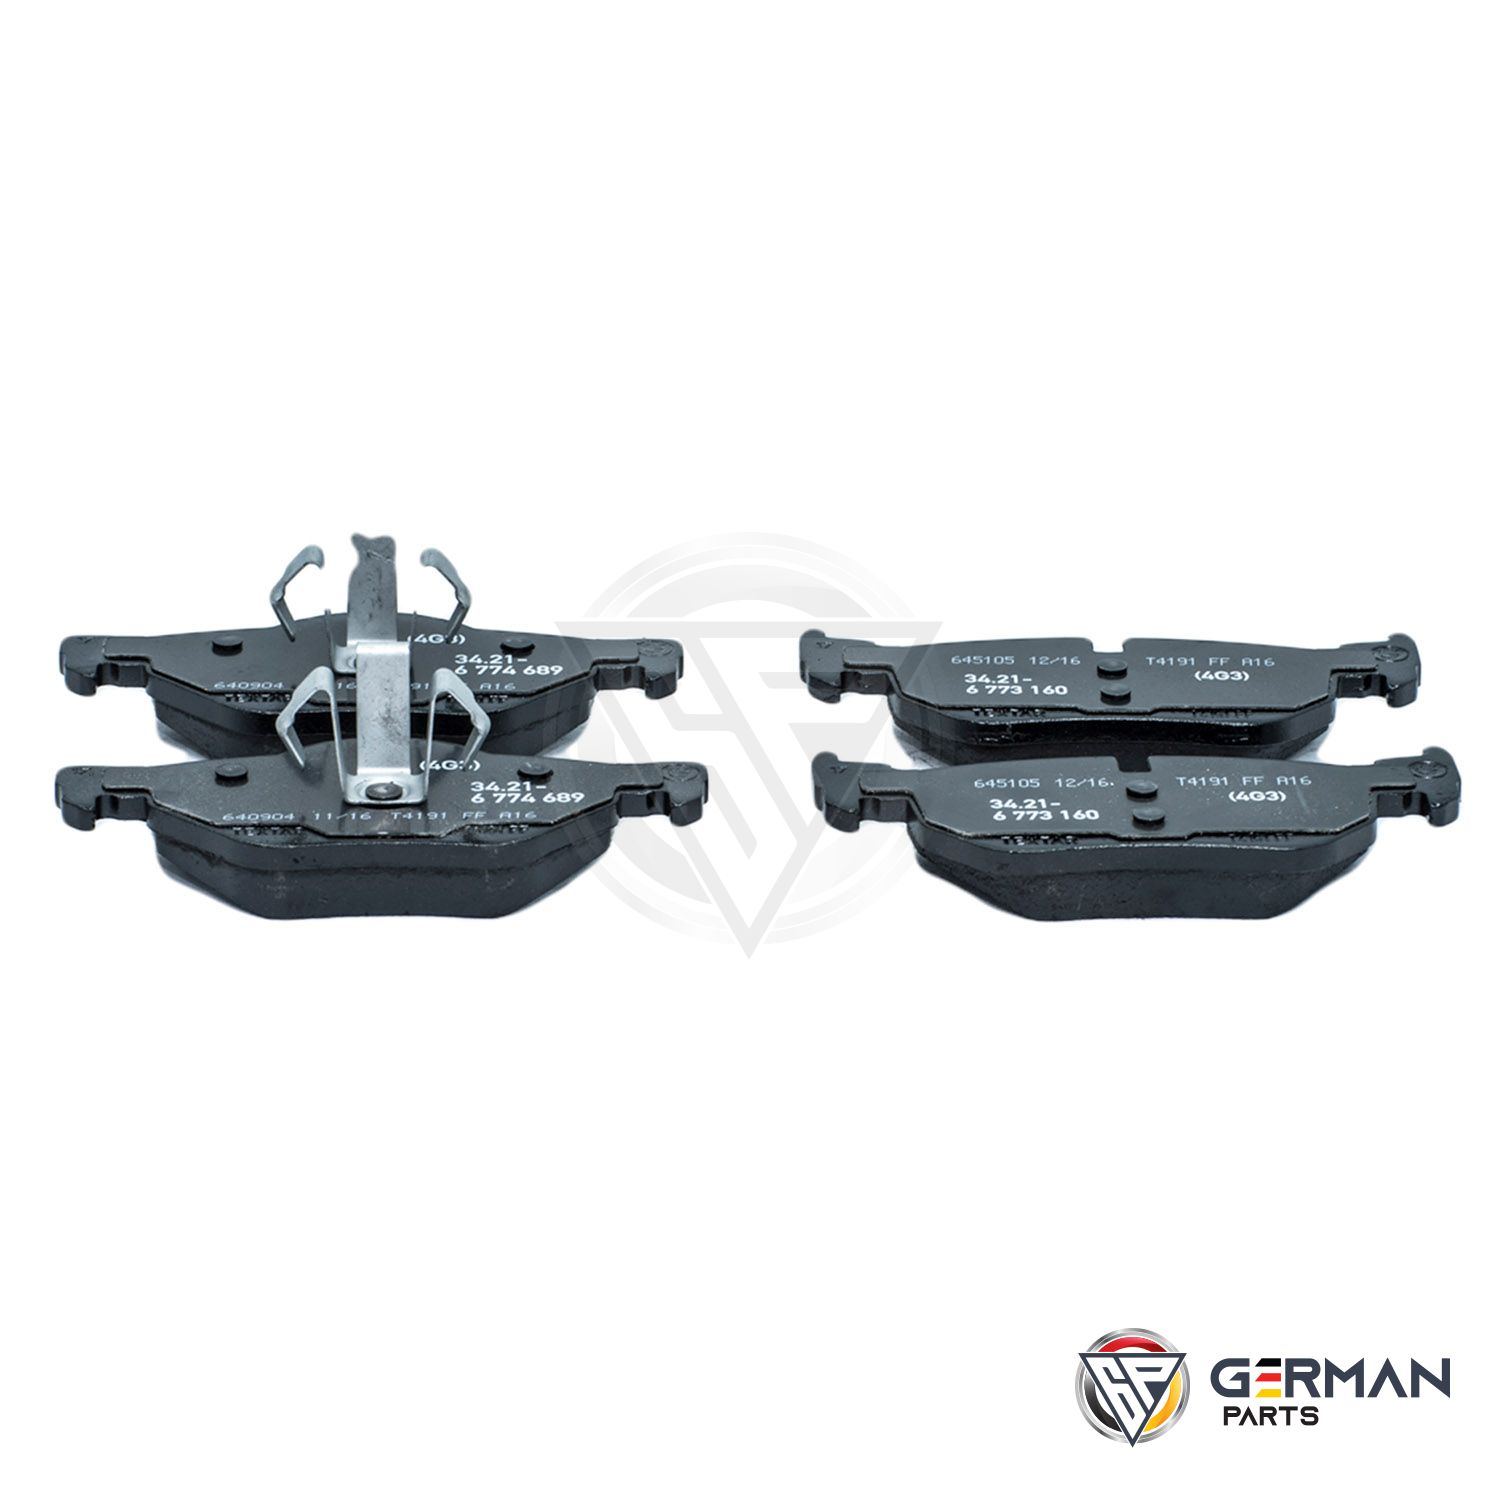 Buy Genuine BMW Rear Brake Pad Set 34216774692 - German Parts